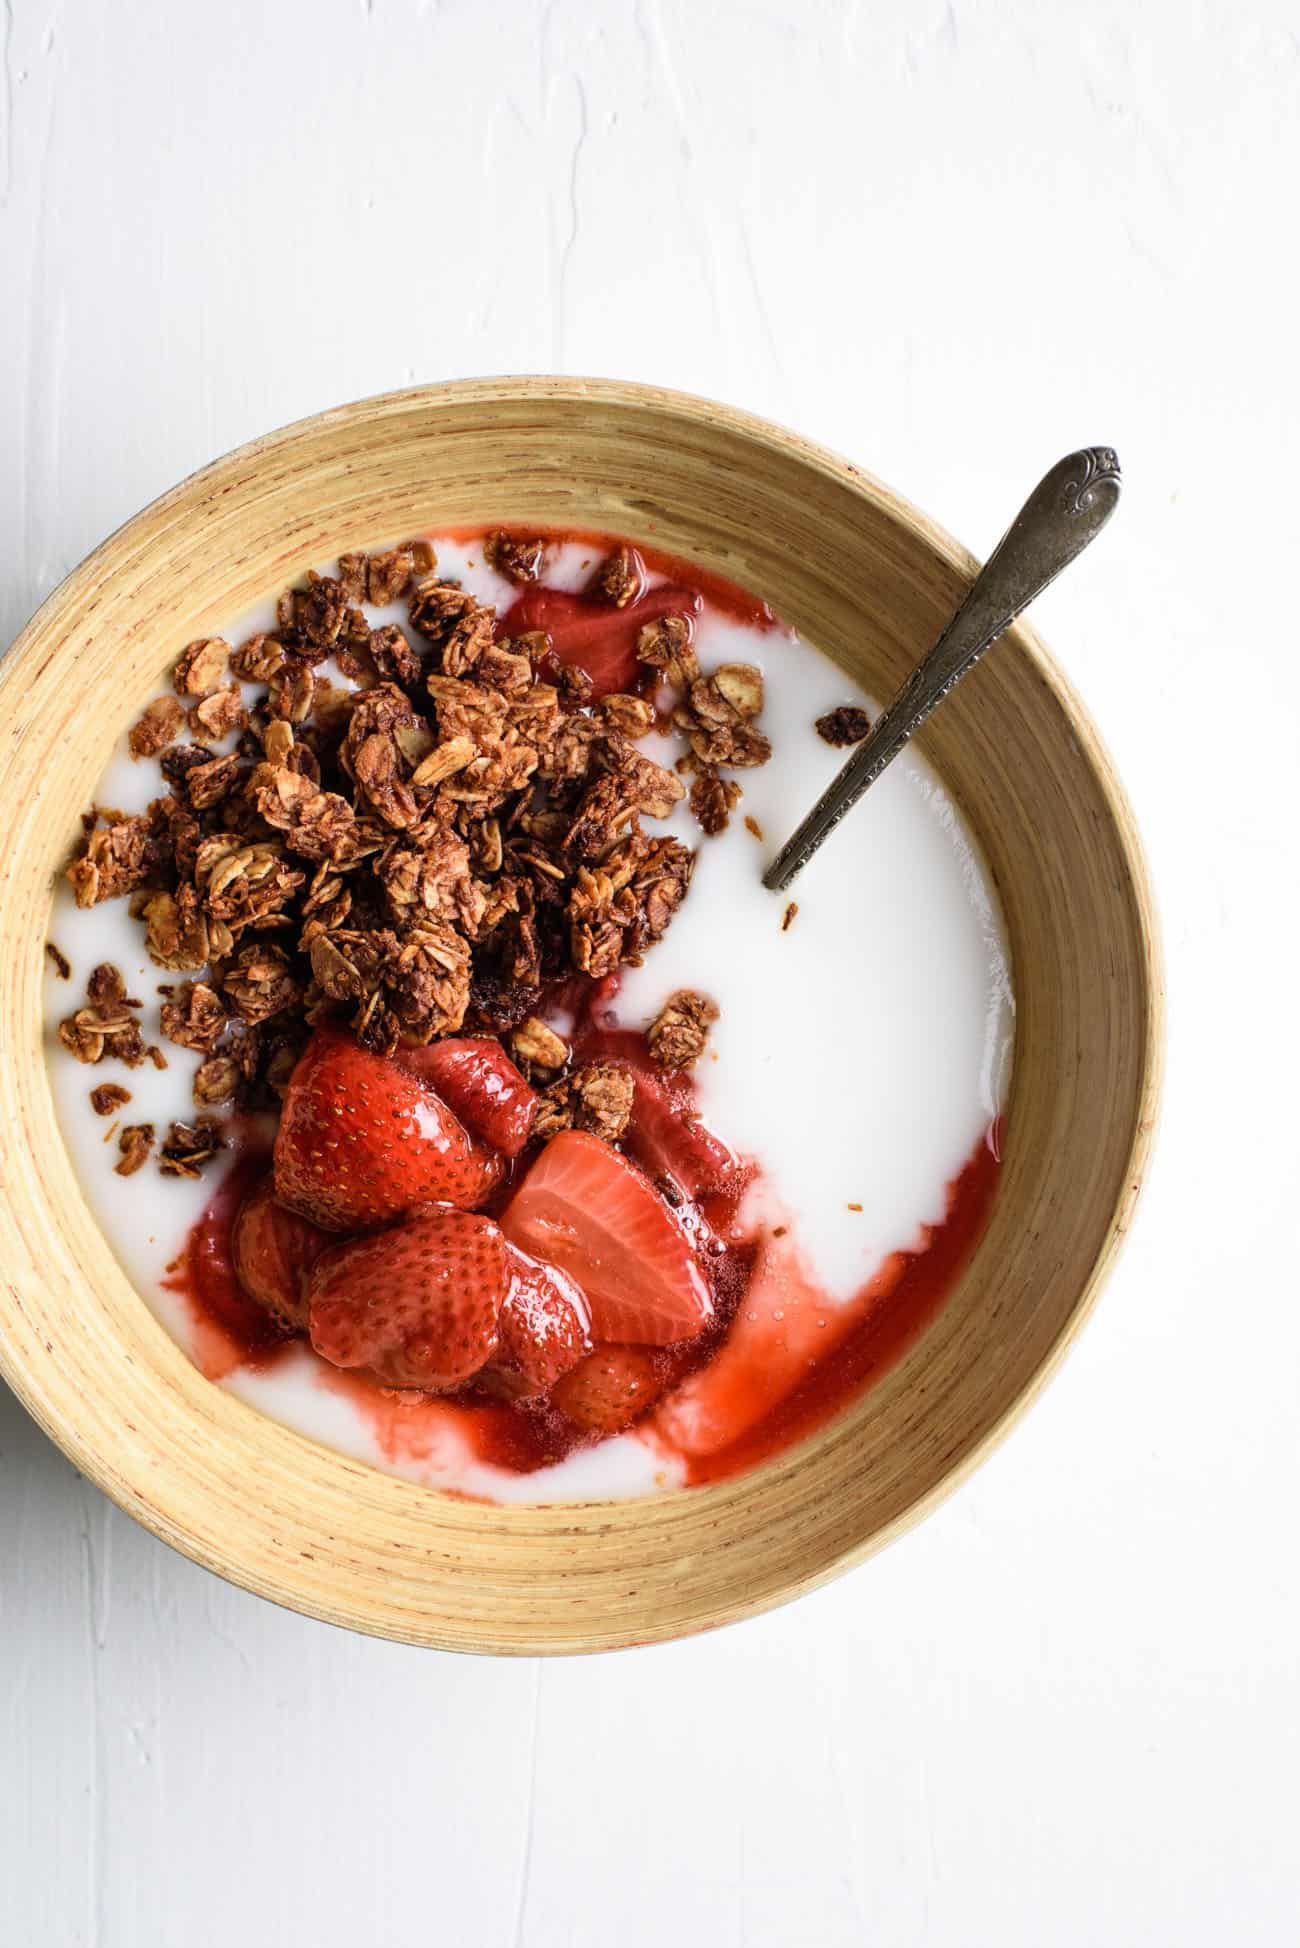 A wooden bowl of vegan yogurt with chocolate coconut granola and roasted strawberries